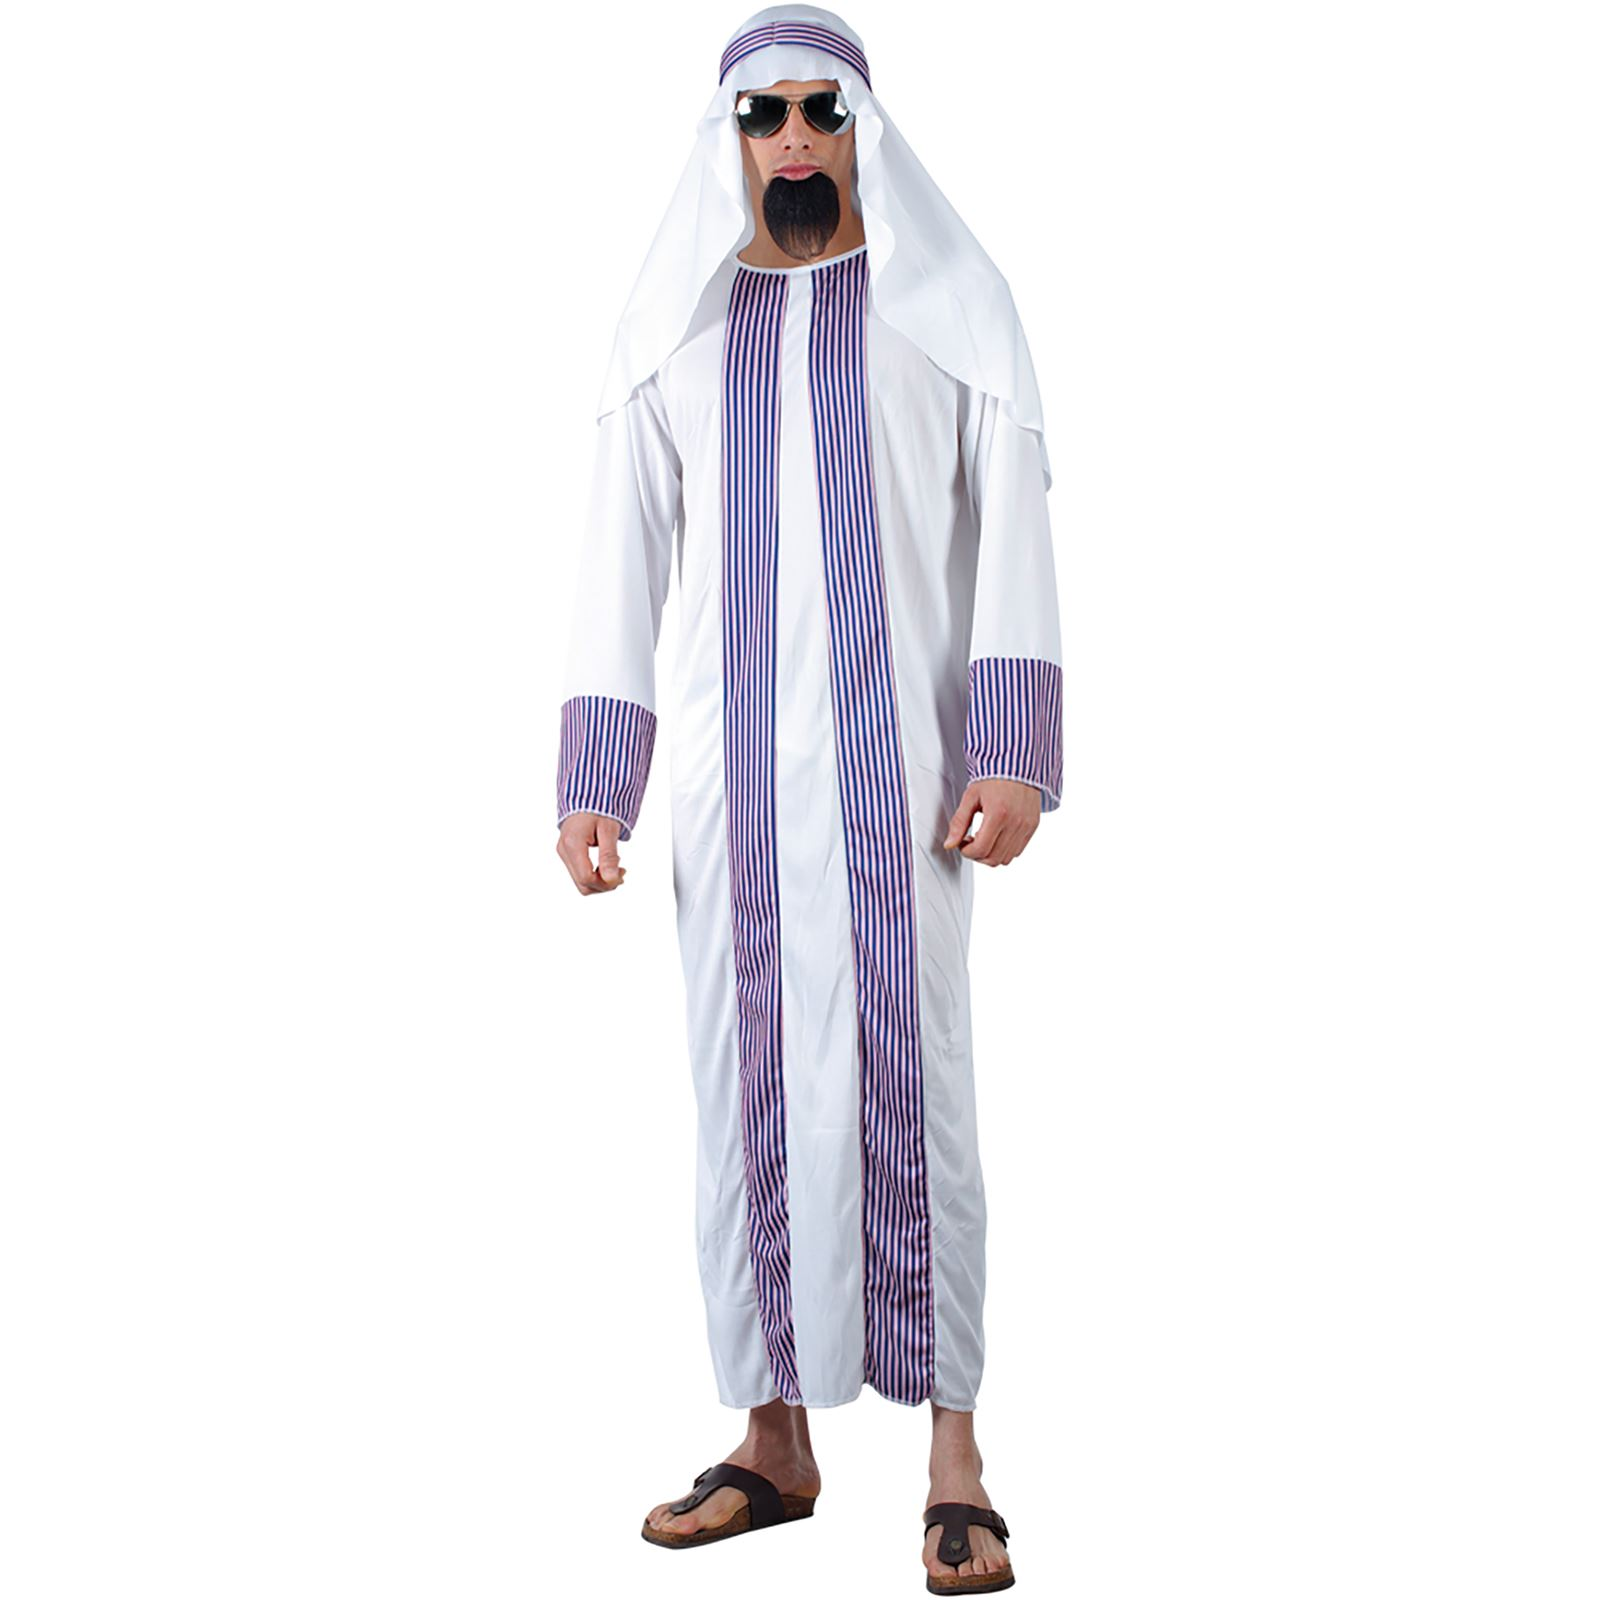 Mens Arab Sheik Style Fancy Dress Halloween Costume  sc 1 st  eBay & Mens Arab Sheik Style Fancy Dress Halloween Costume | eBay